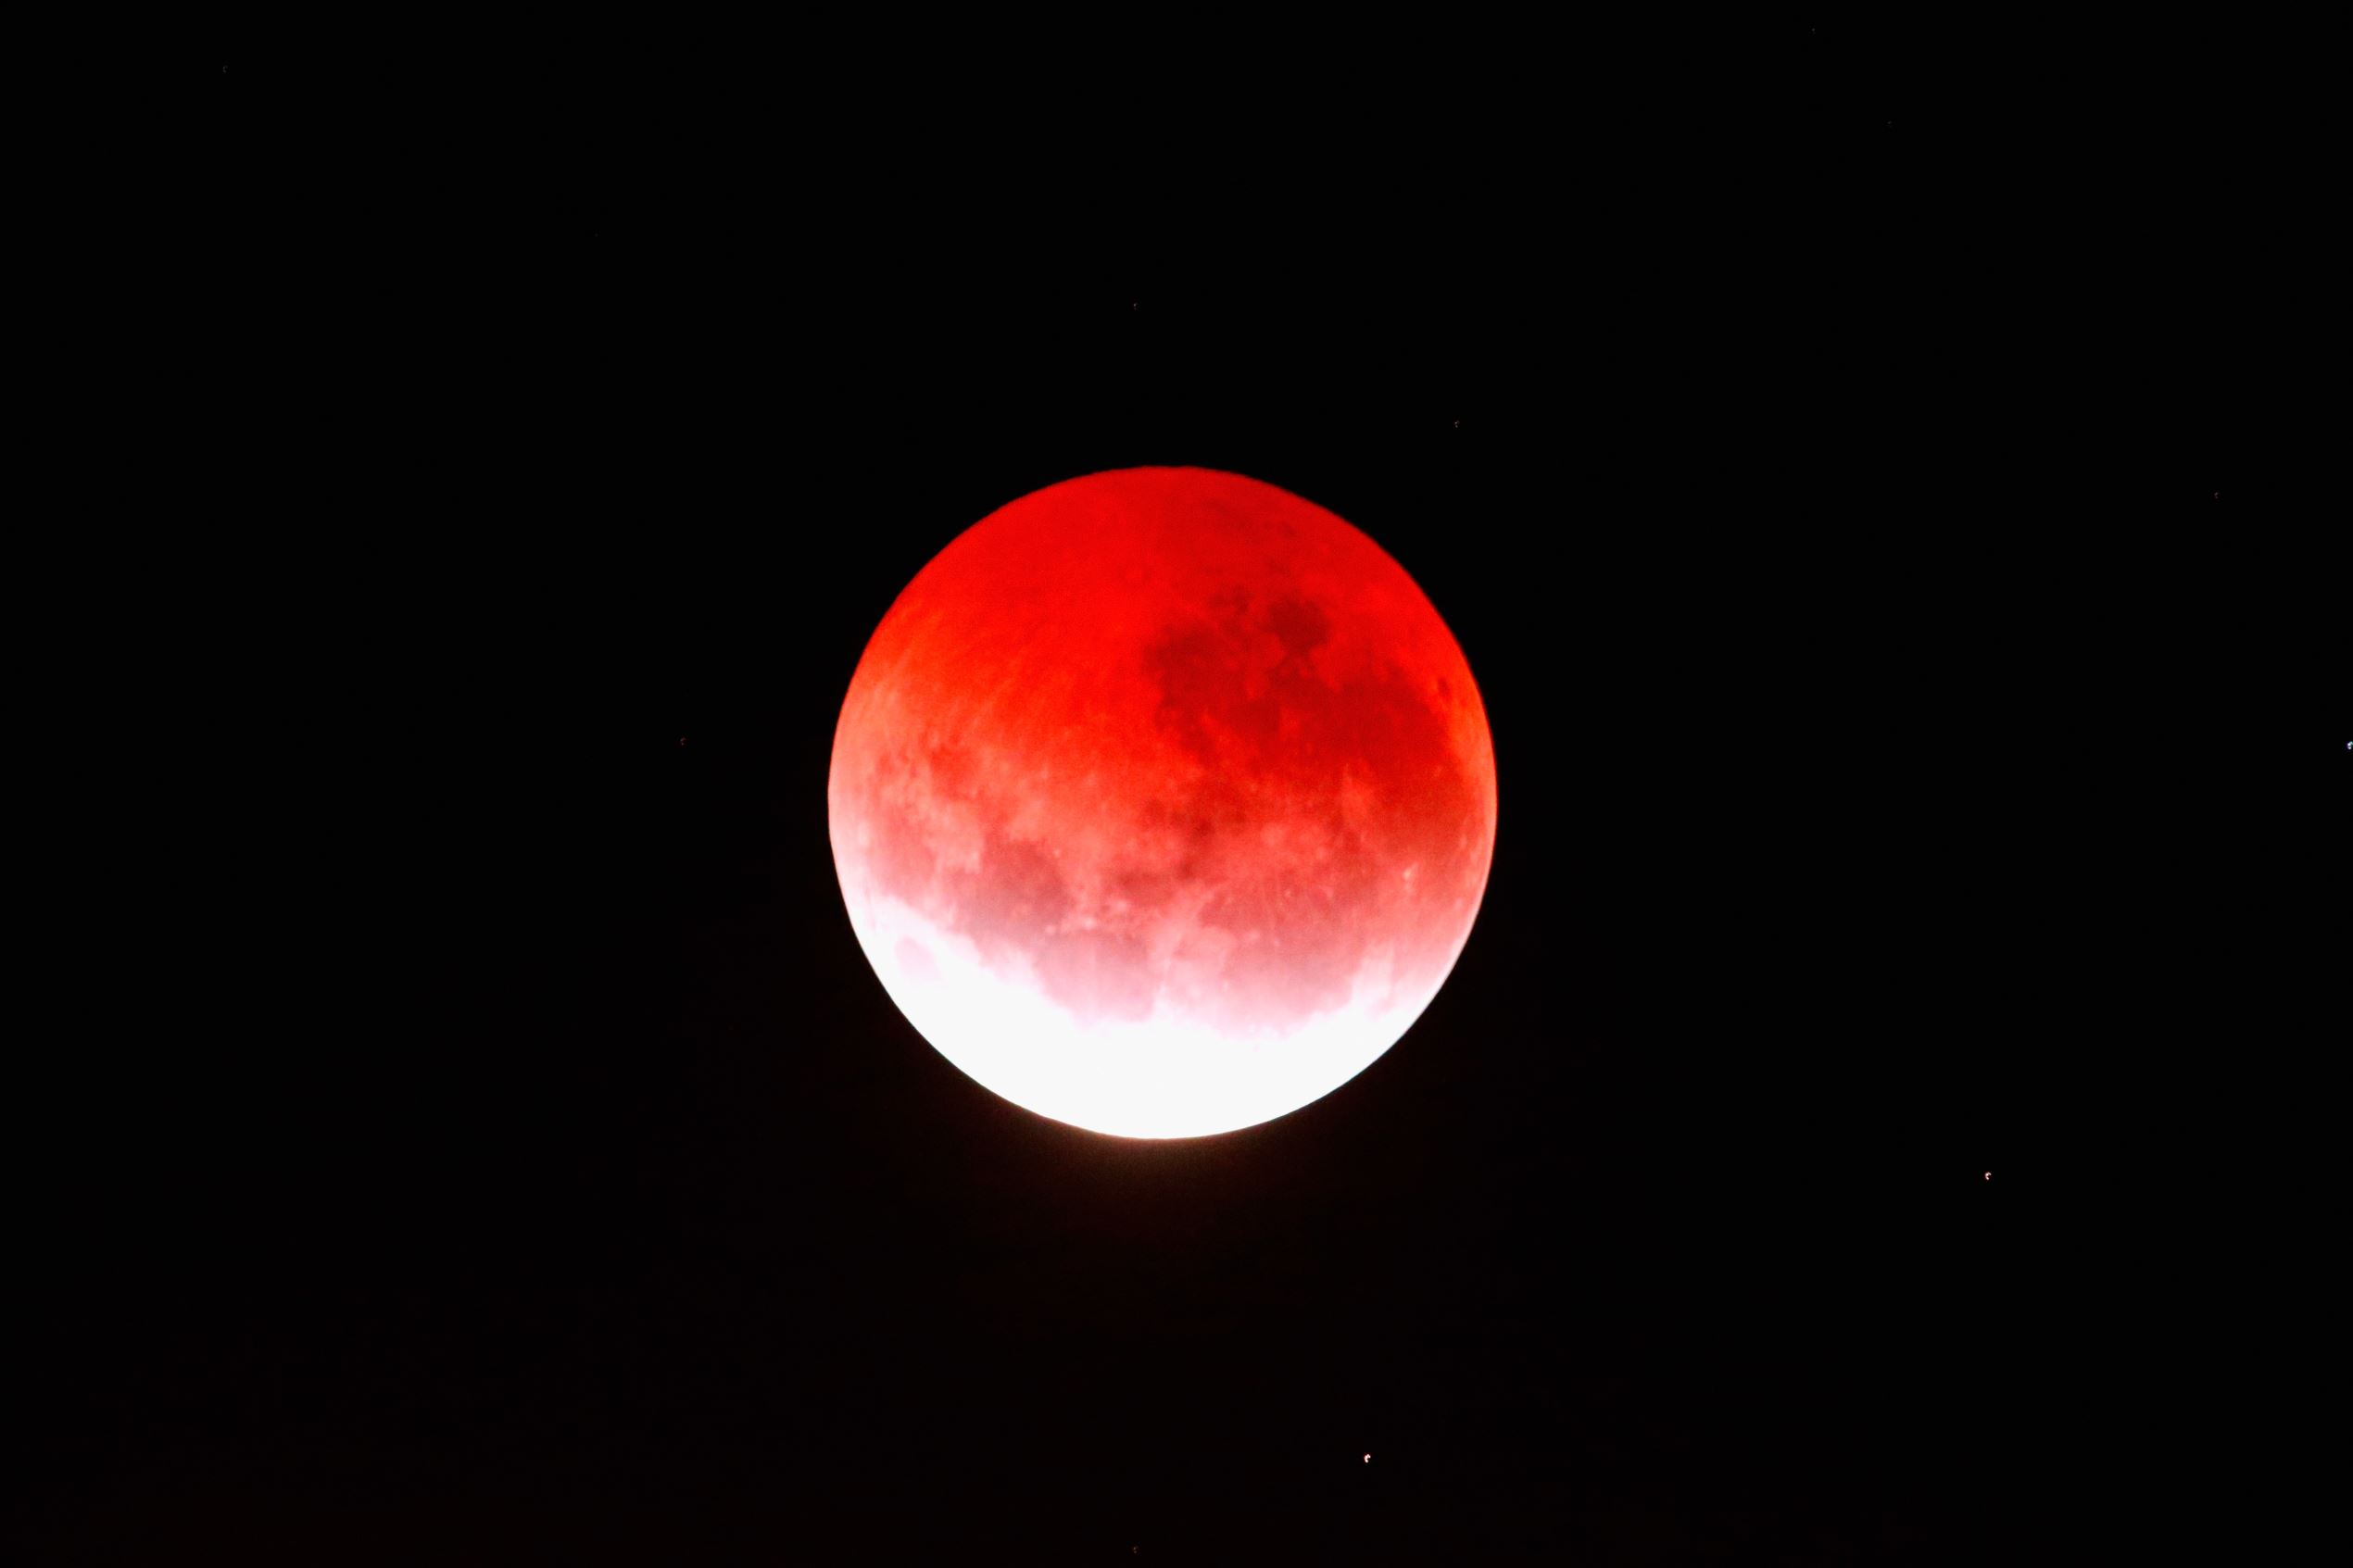 blood moon eclipse united states - photo #47